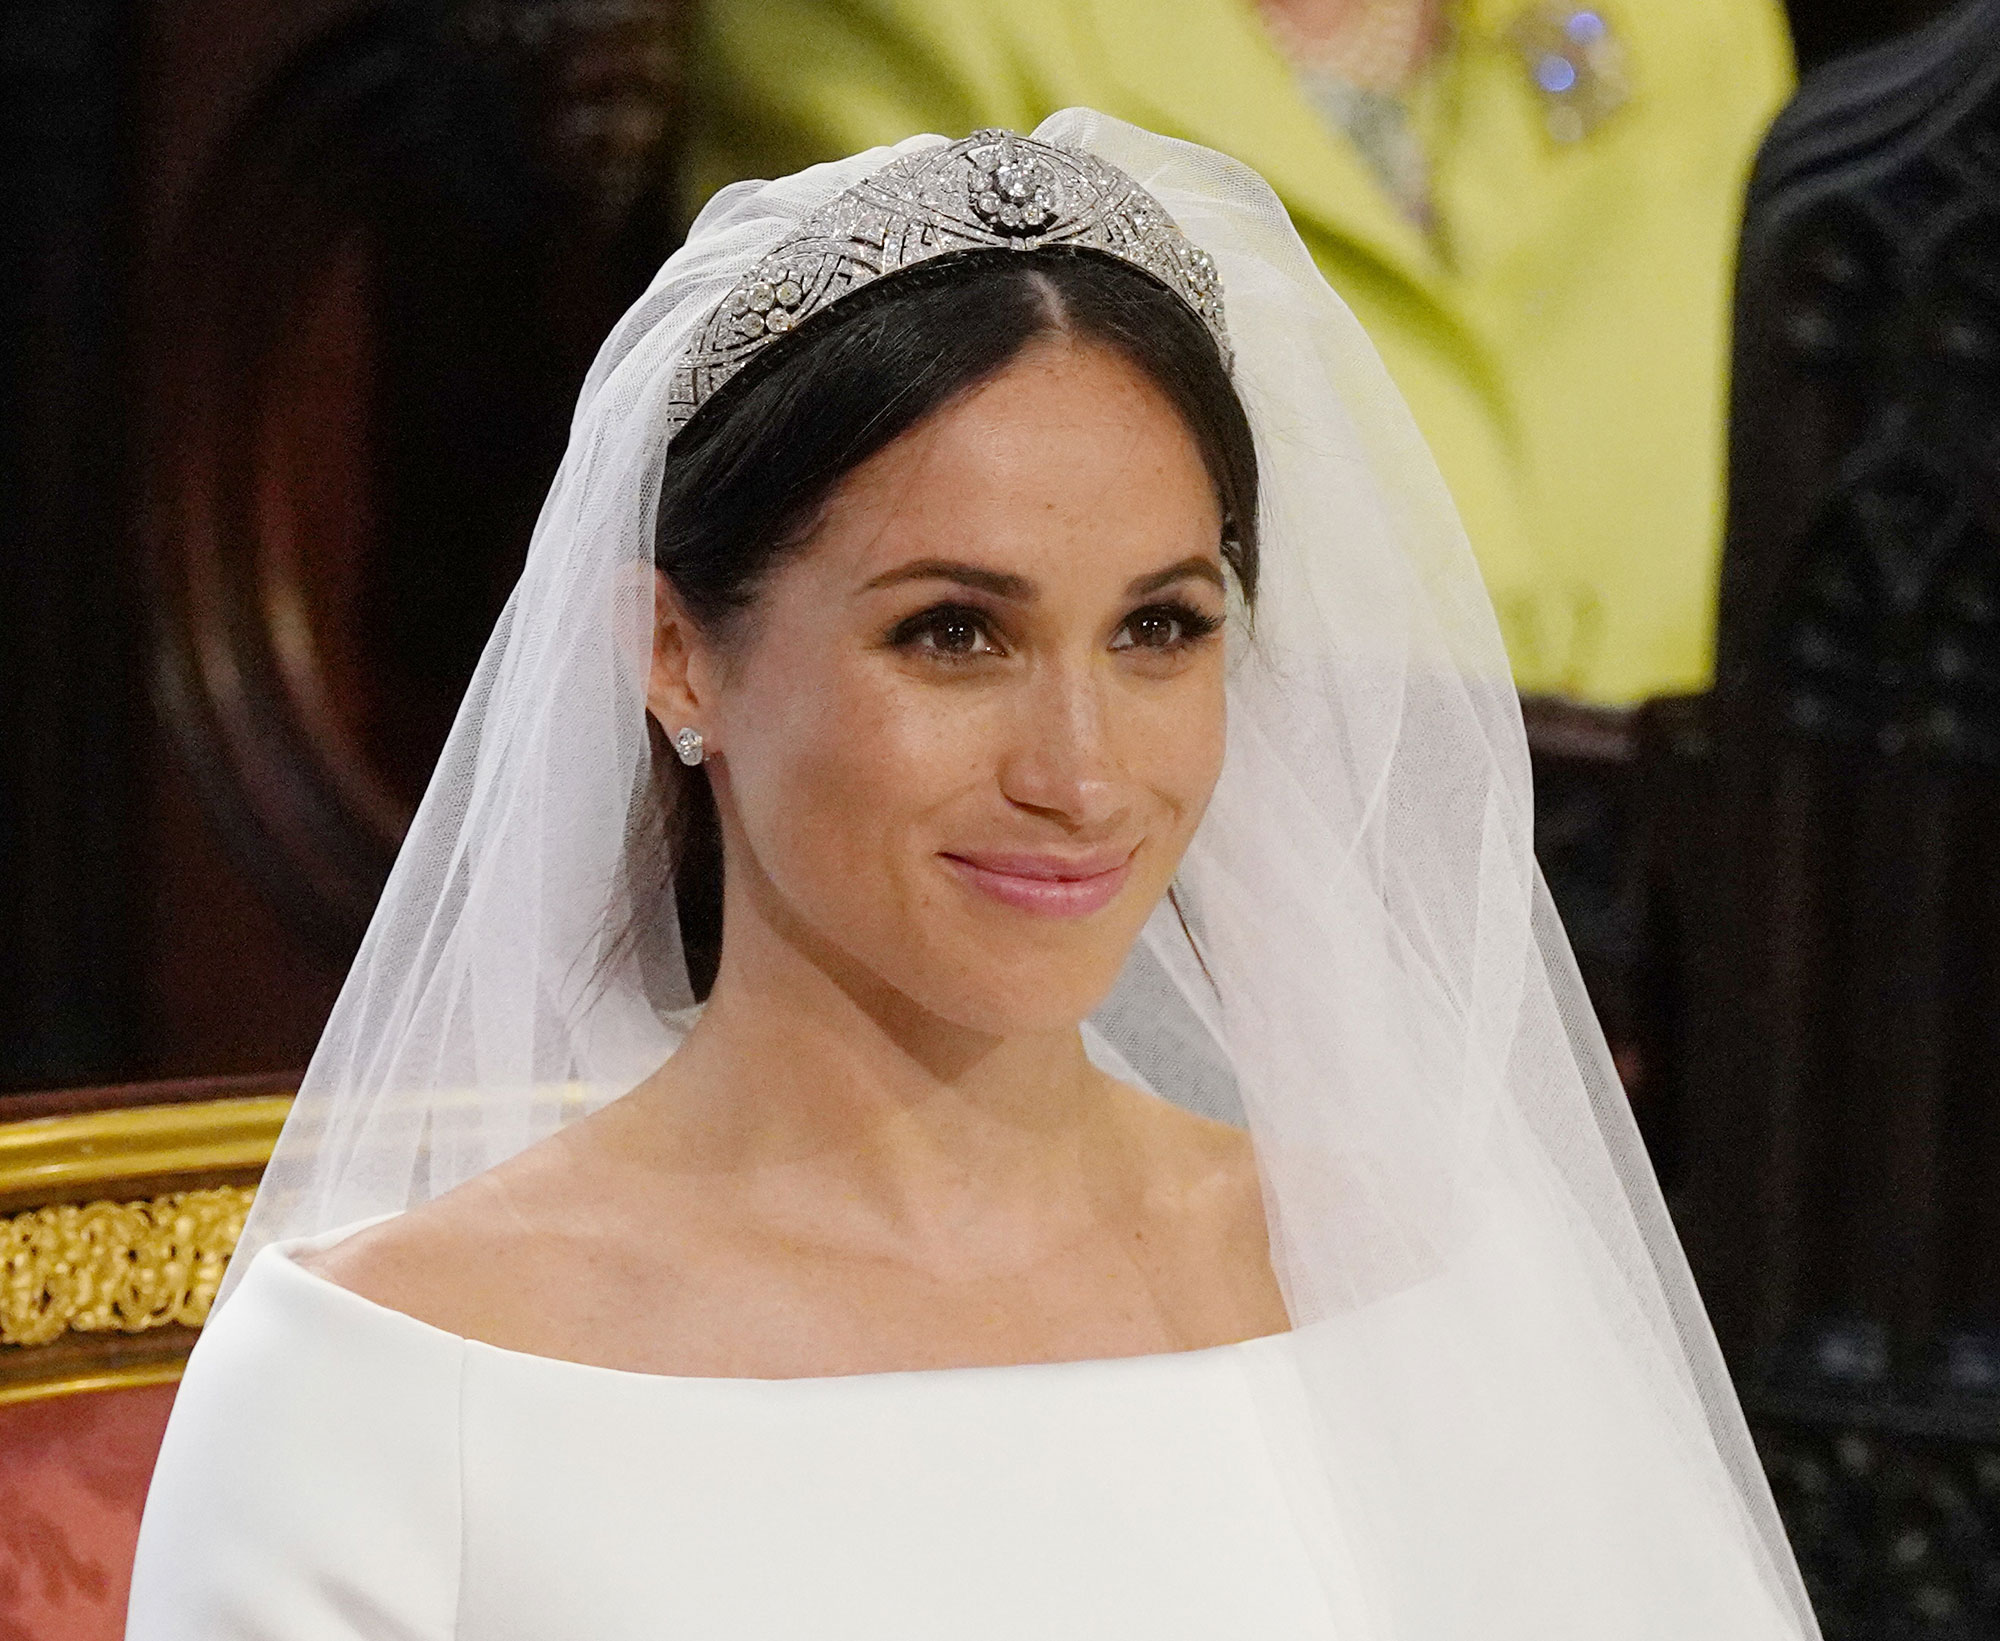 This Is Where Meghan Markle Got Her Wedding Makeup Inspiration